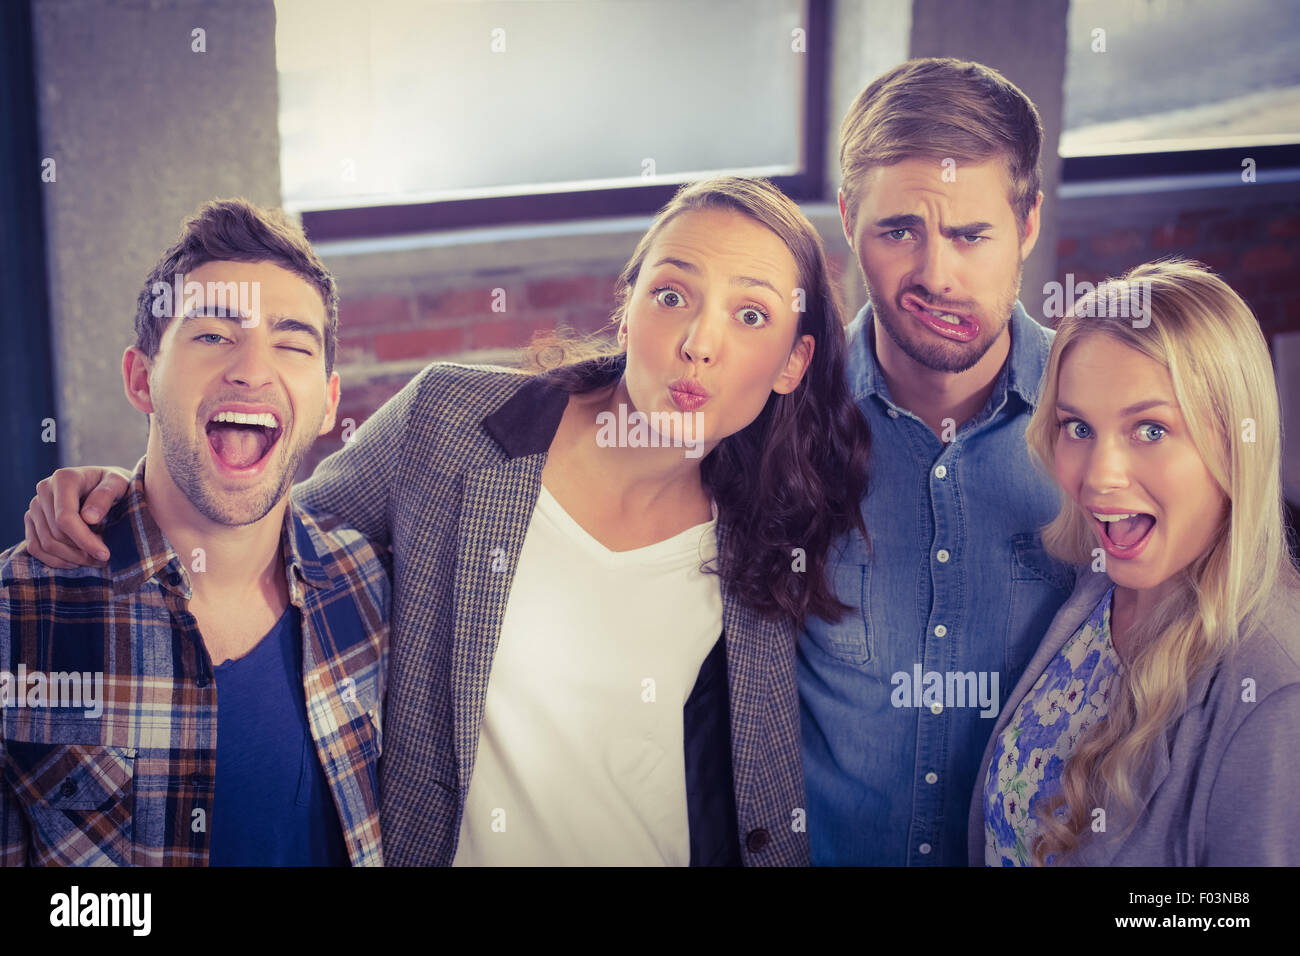 Grimacing friends having fun - Stock Image